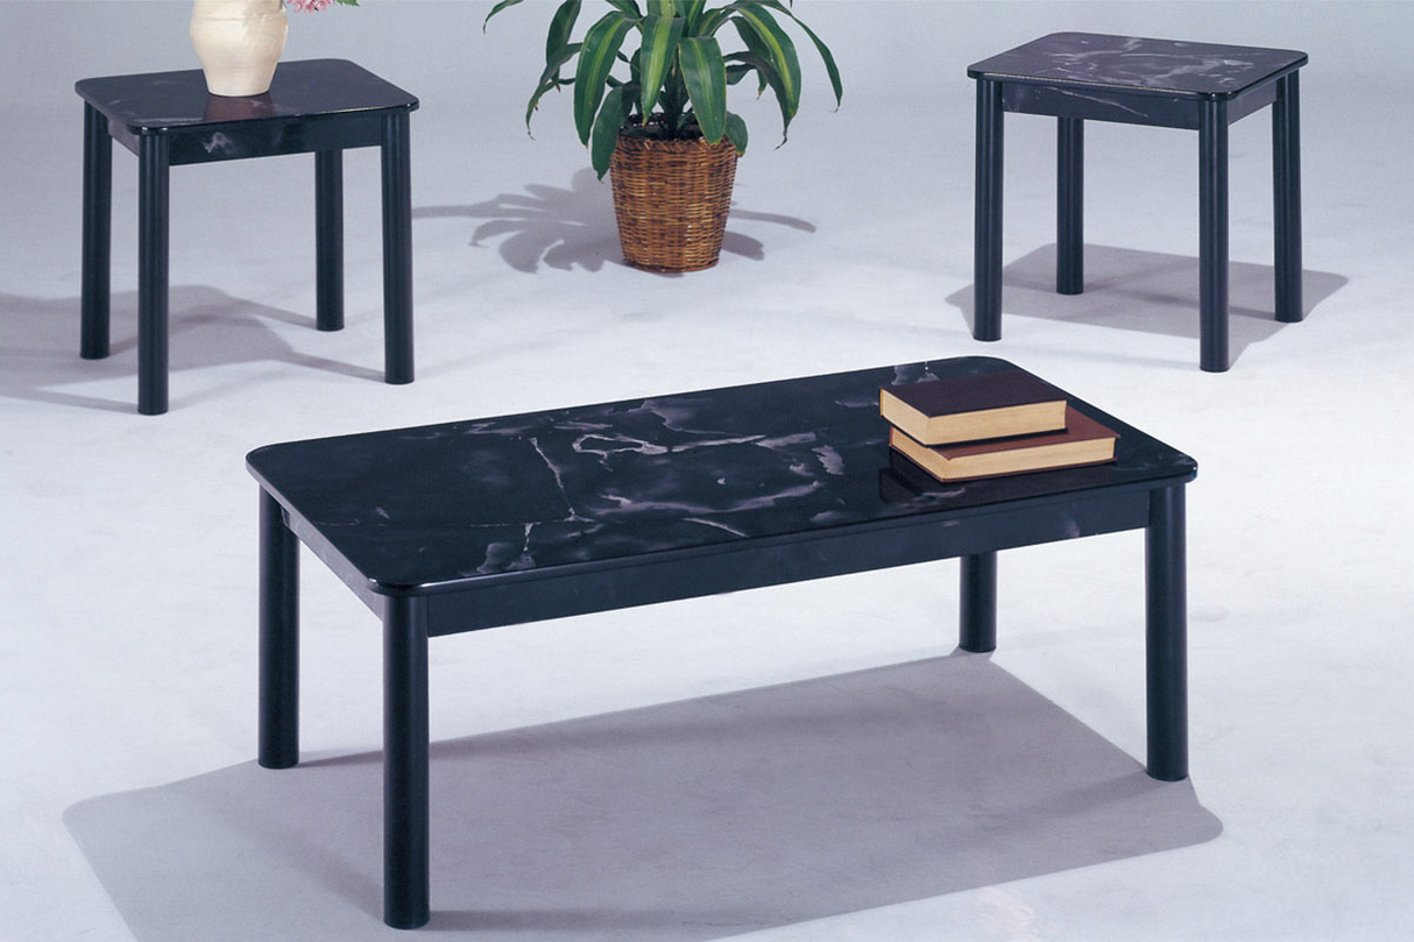 Black Marble Coffee Table Set - Steal-A-Sofa Furniture Outlet Los Angeles CA